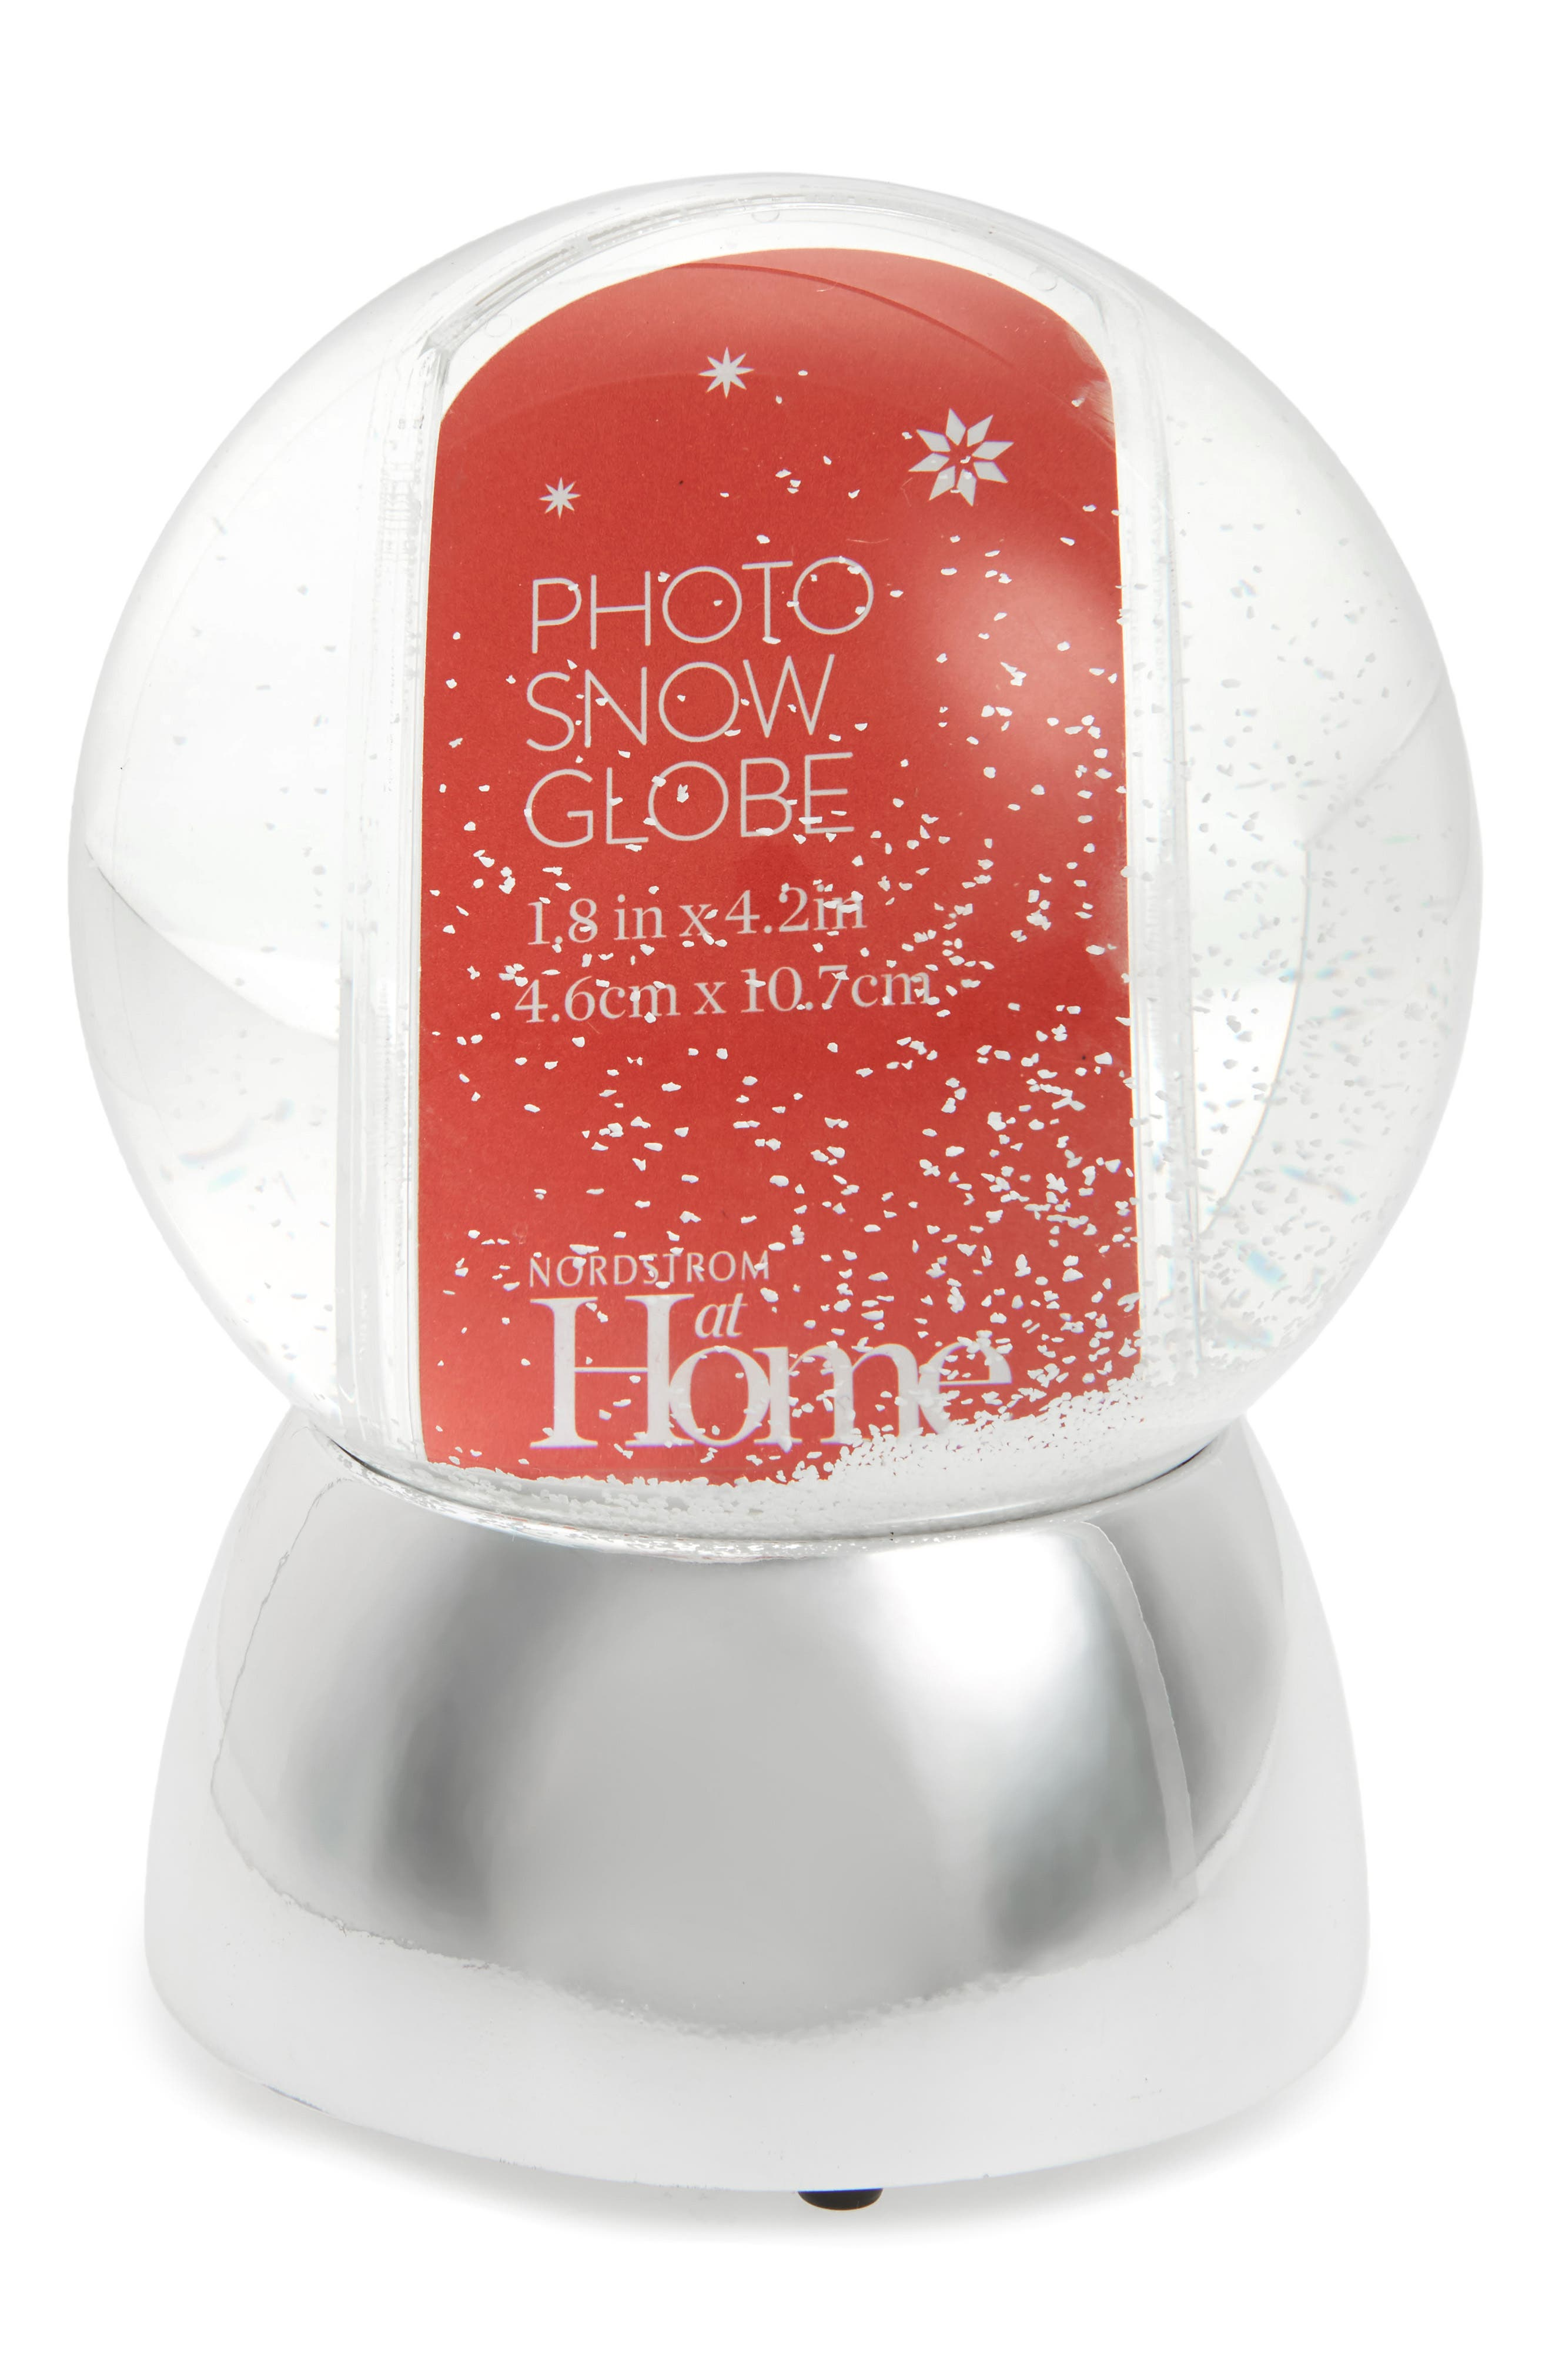 Nordstrom at Home Photo Snow Globe